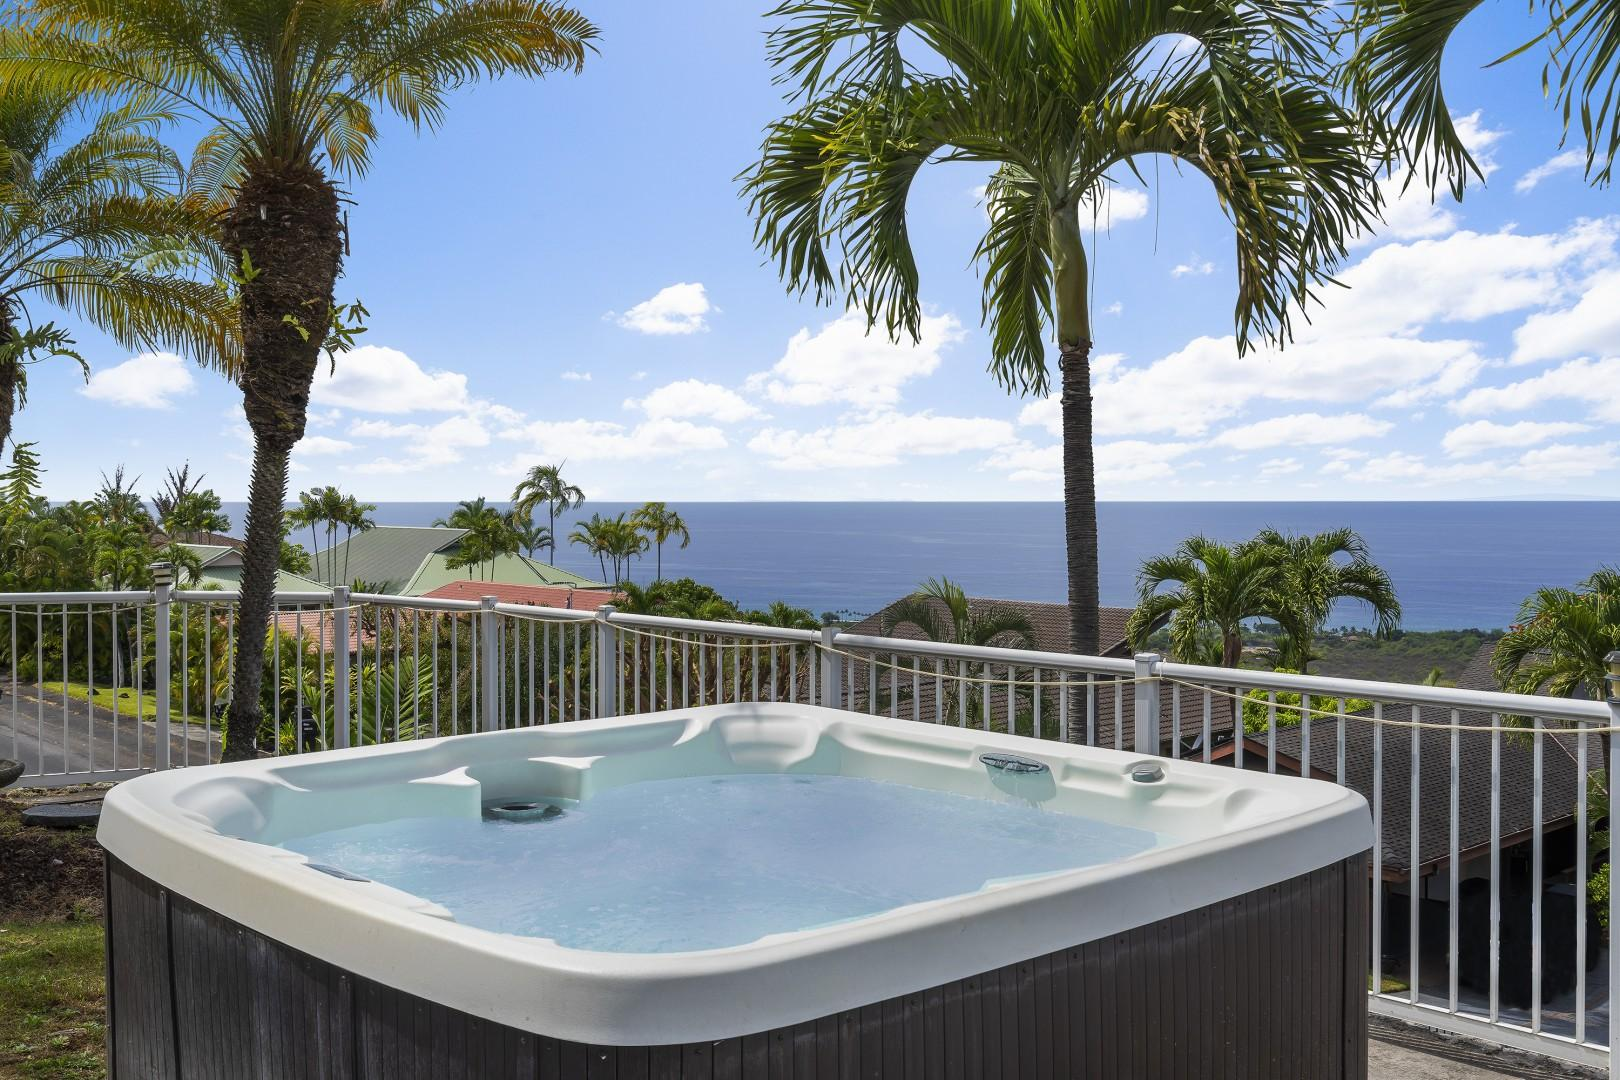 The hot tub can seat 6 guests